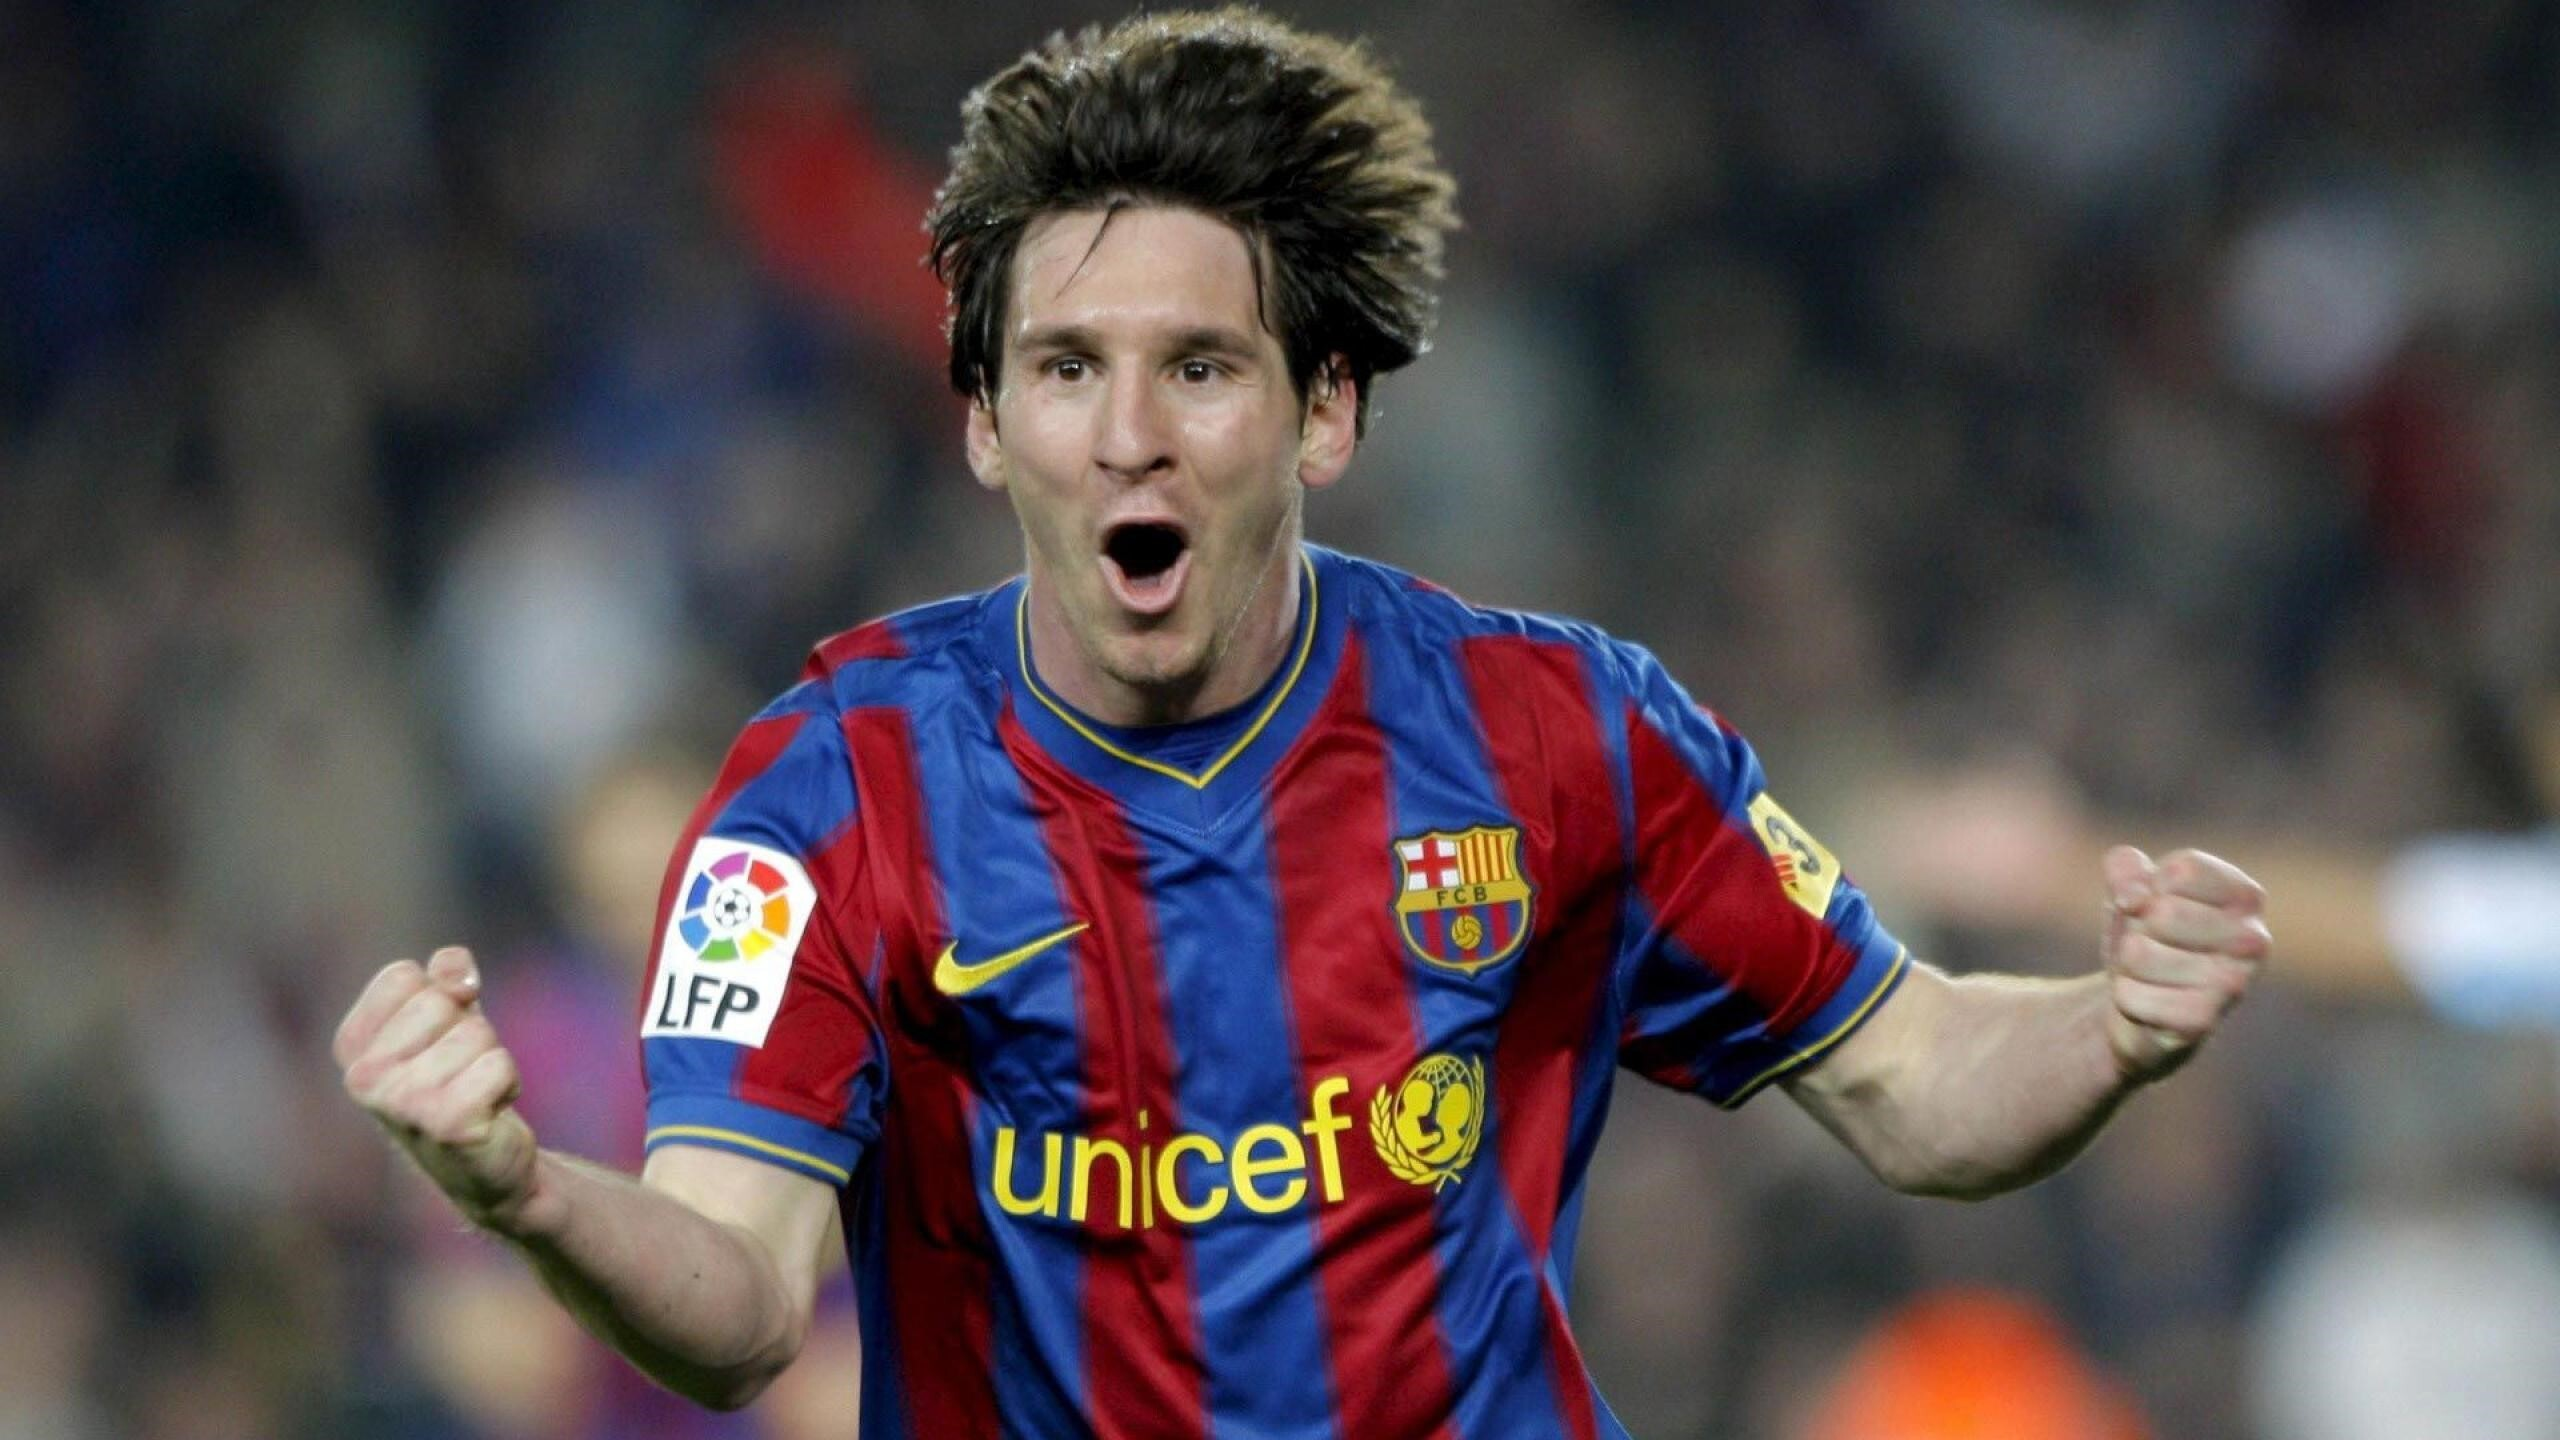 2013 category football downloads 911 tags lionel messi football sportsFootball Player Messi 2013